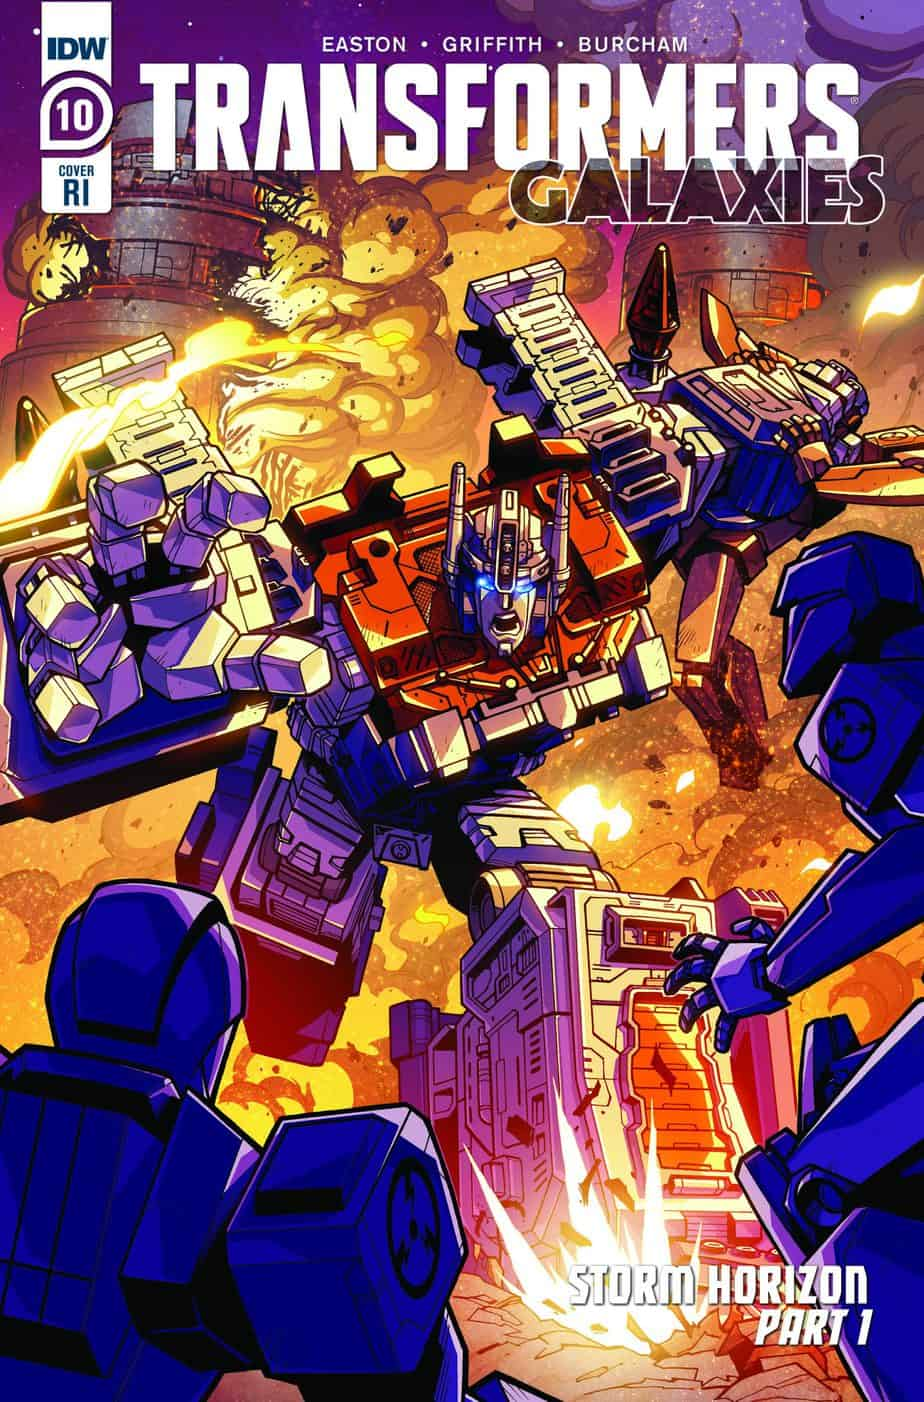 Transformers: Galaxies #10 - Retailer Incentive Cover